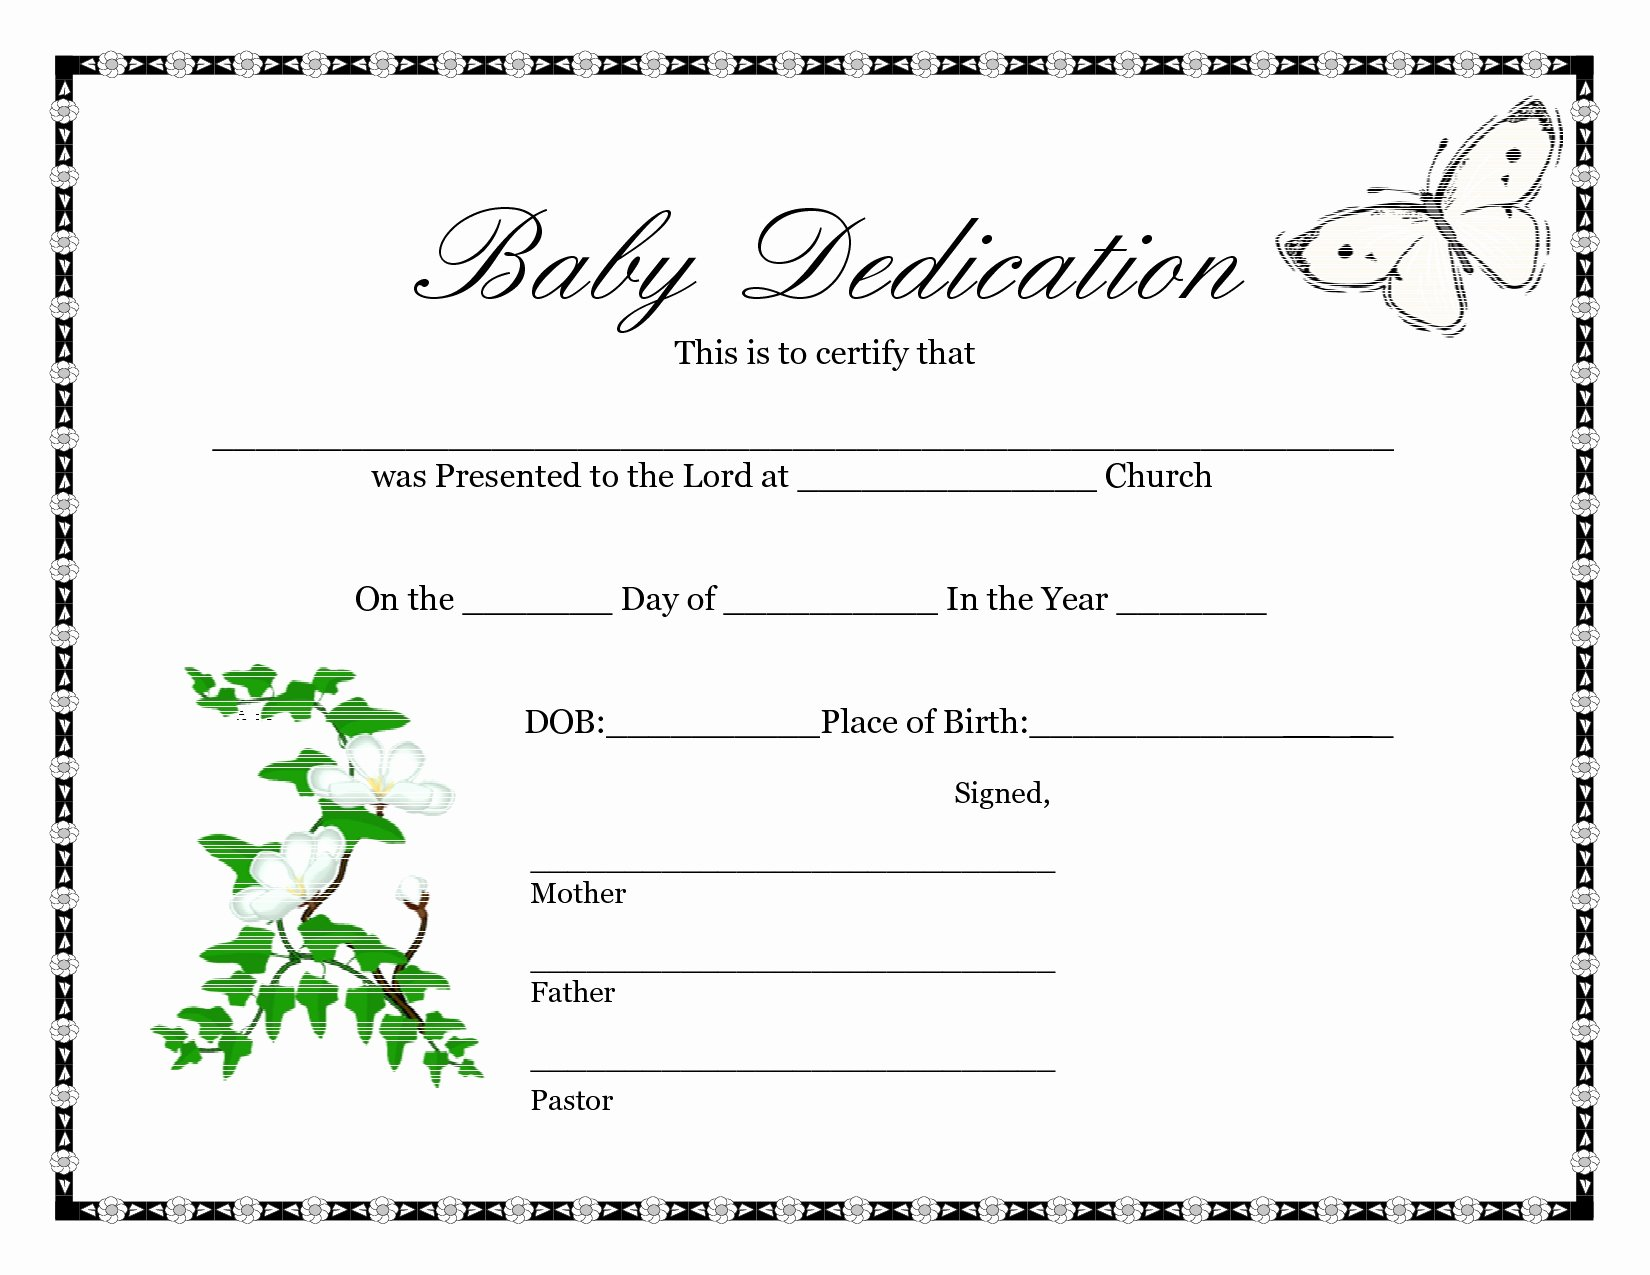 Fake Birth Certificate Template Best Of 21 Advanced Fake Birth Certificate Template Free Fa